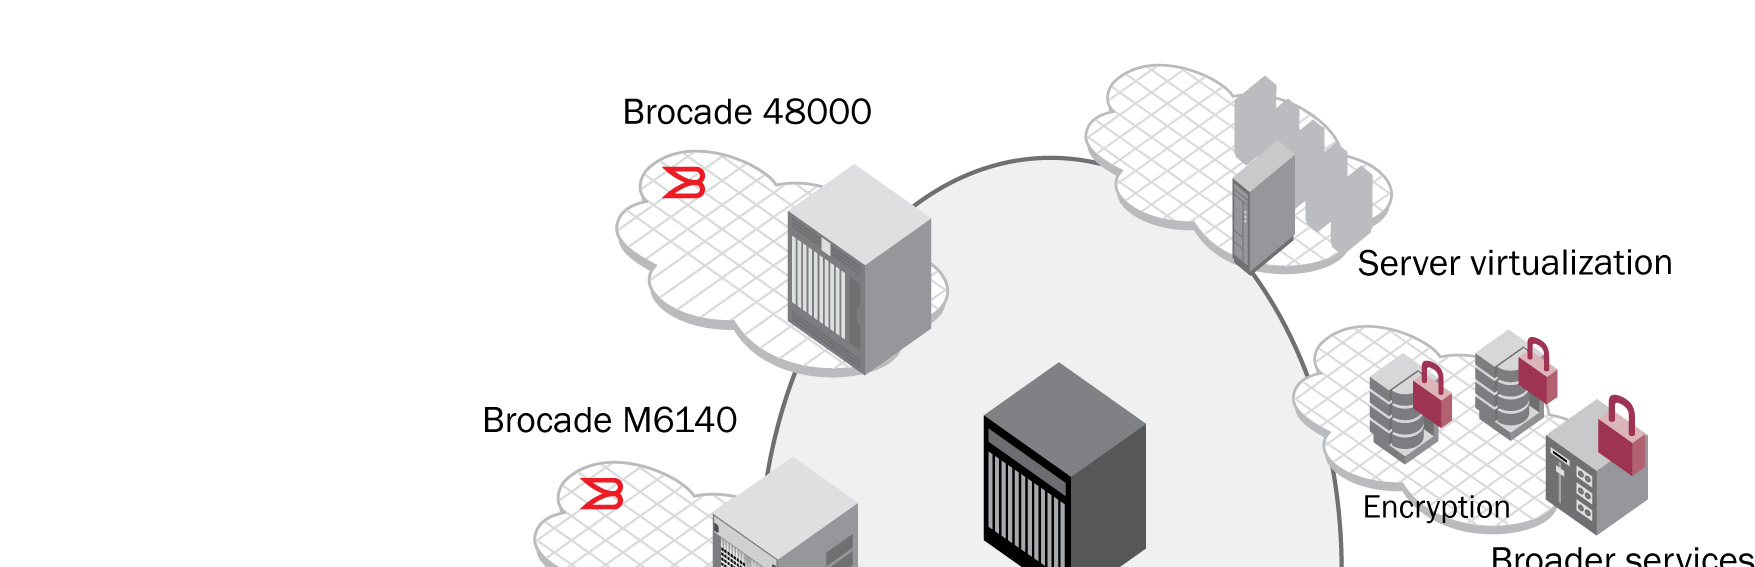 The Brocade DCX Backbone is the building block for converging server-to-server, server-to-storage, and storage-to-storage connectivity, which integrates with virtual server and